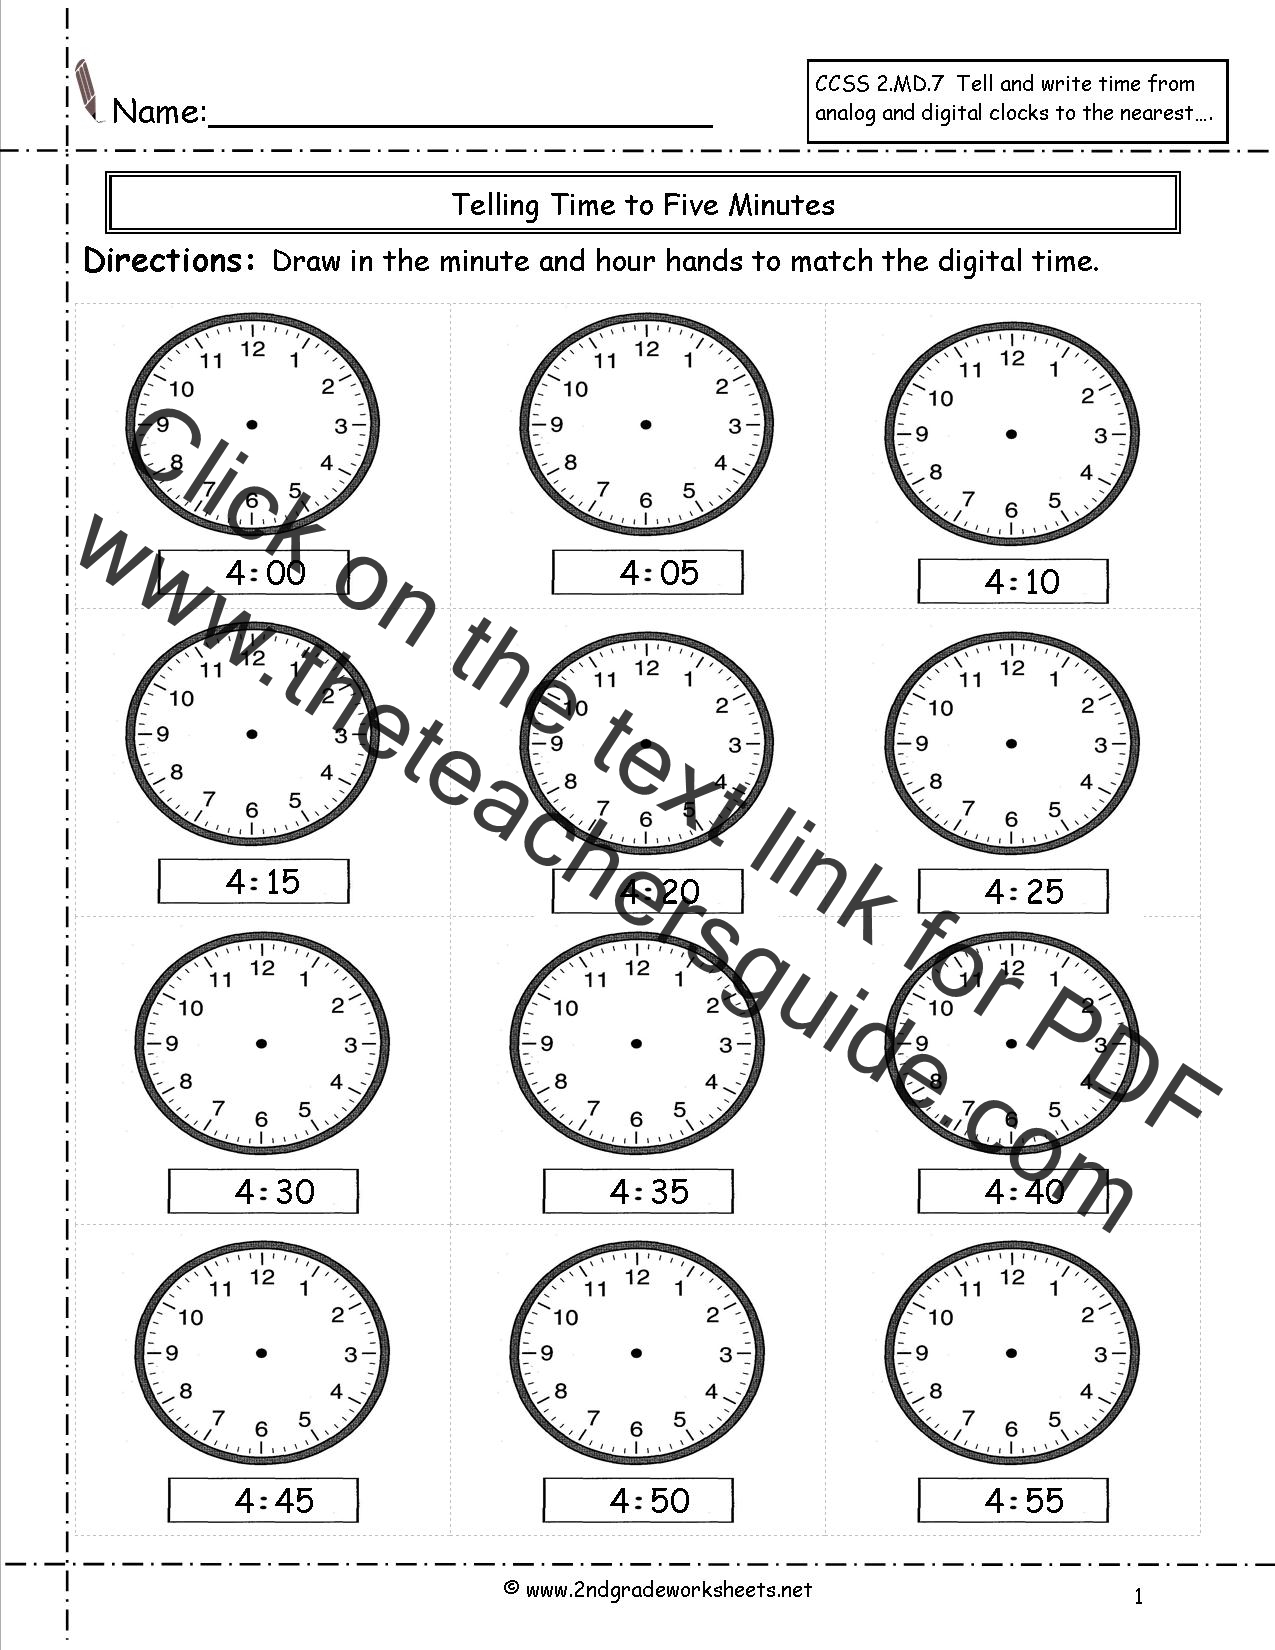 Worksheets How To Tell Time Worksheets telling and writing time worksheets worksheets